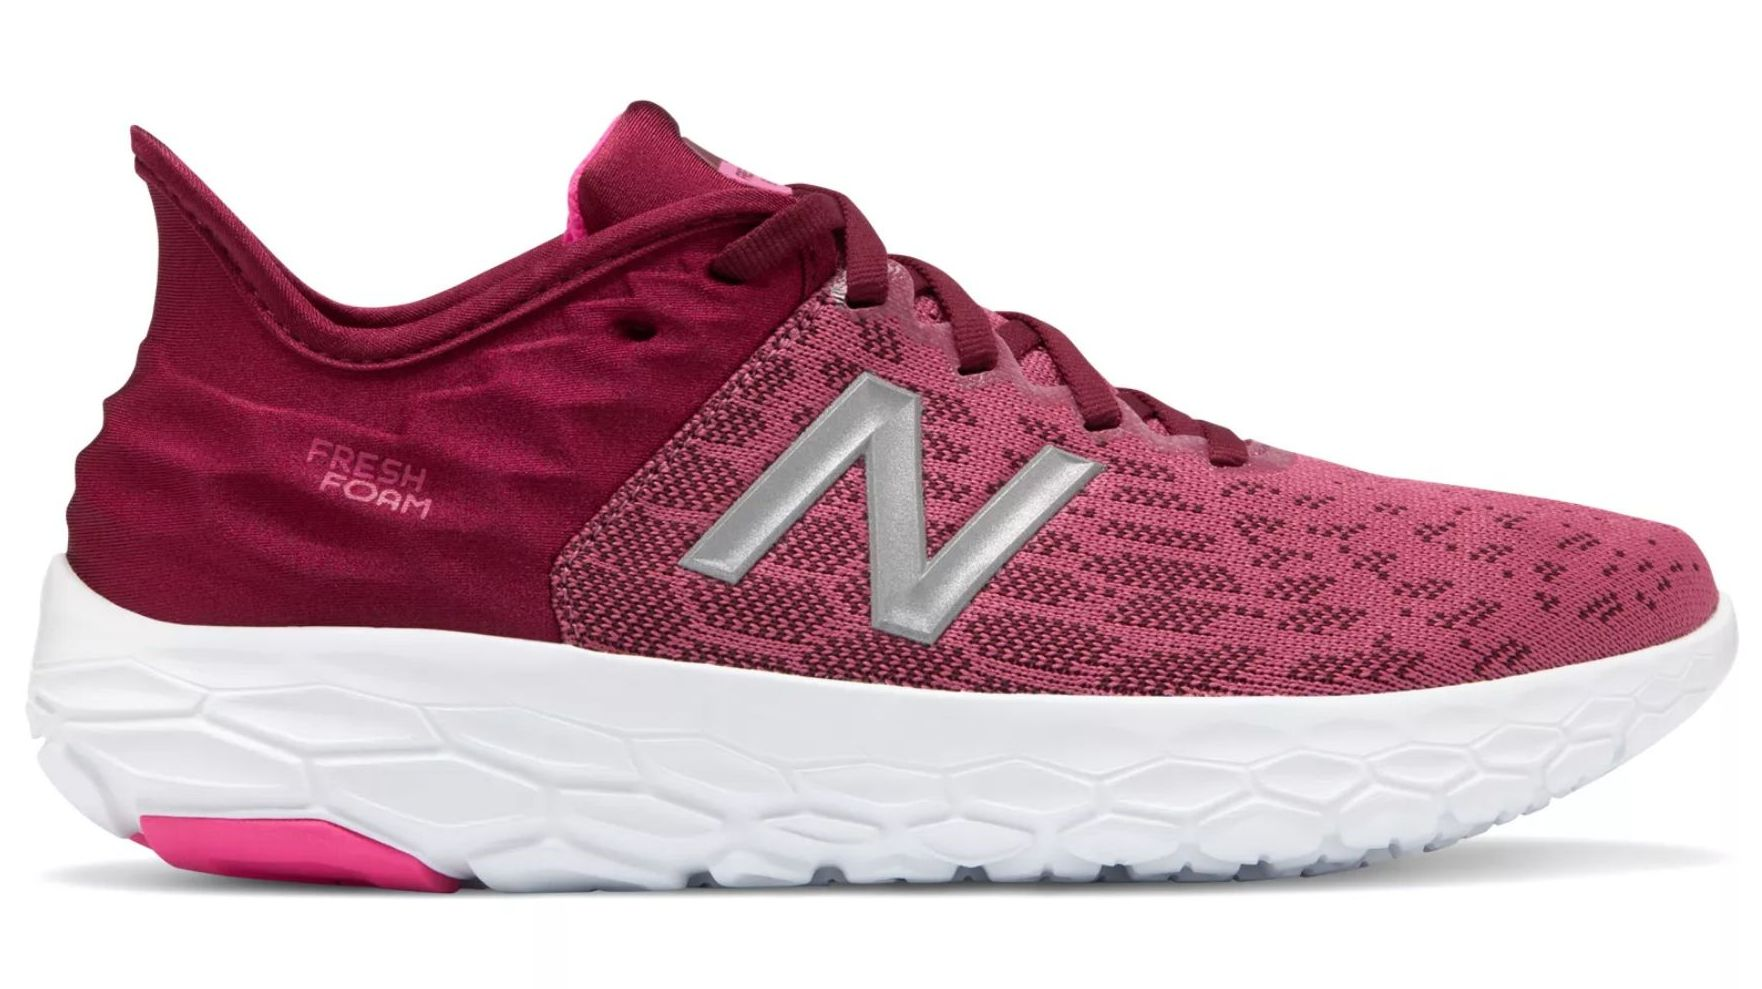 best sneakers 95185 630b7 Best New Balance Running Shoes | New Balance Shoe Reviews 2019